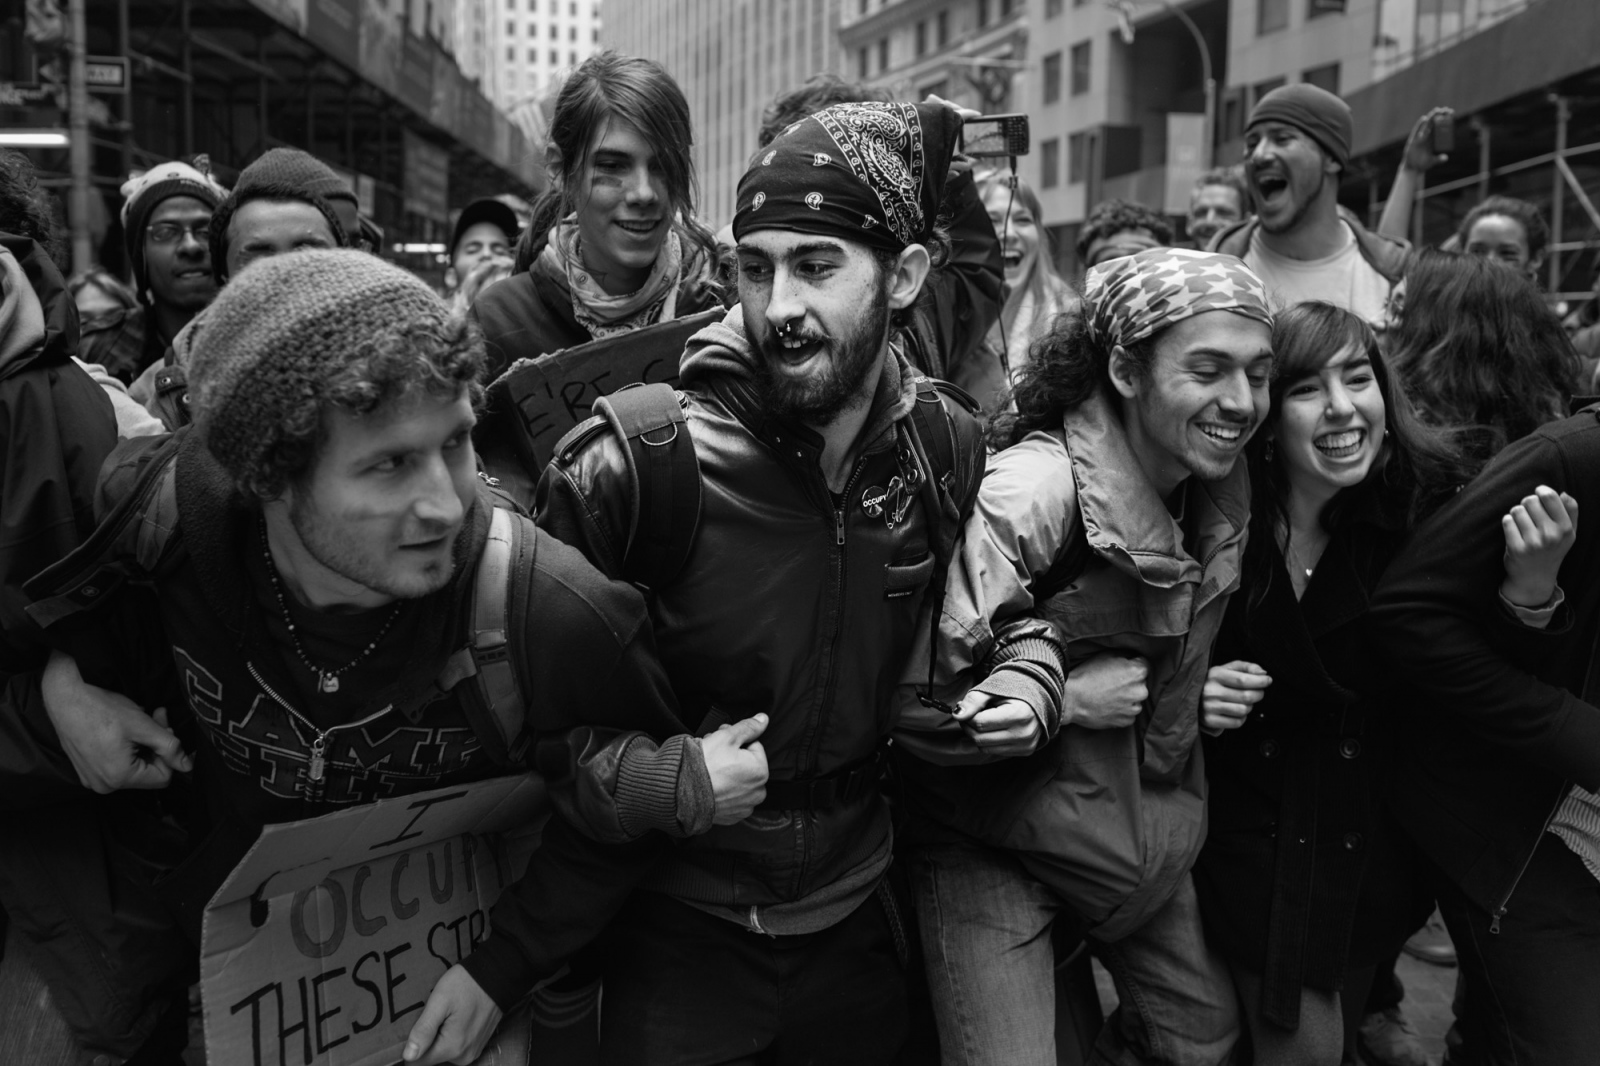 OWS protestors link arms to avoid people being singled out and arrested during a demonstration.